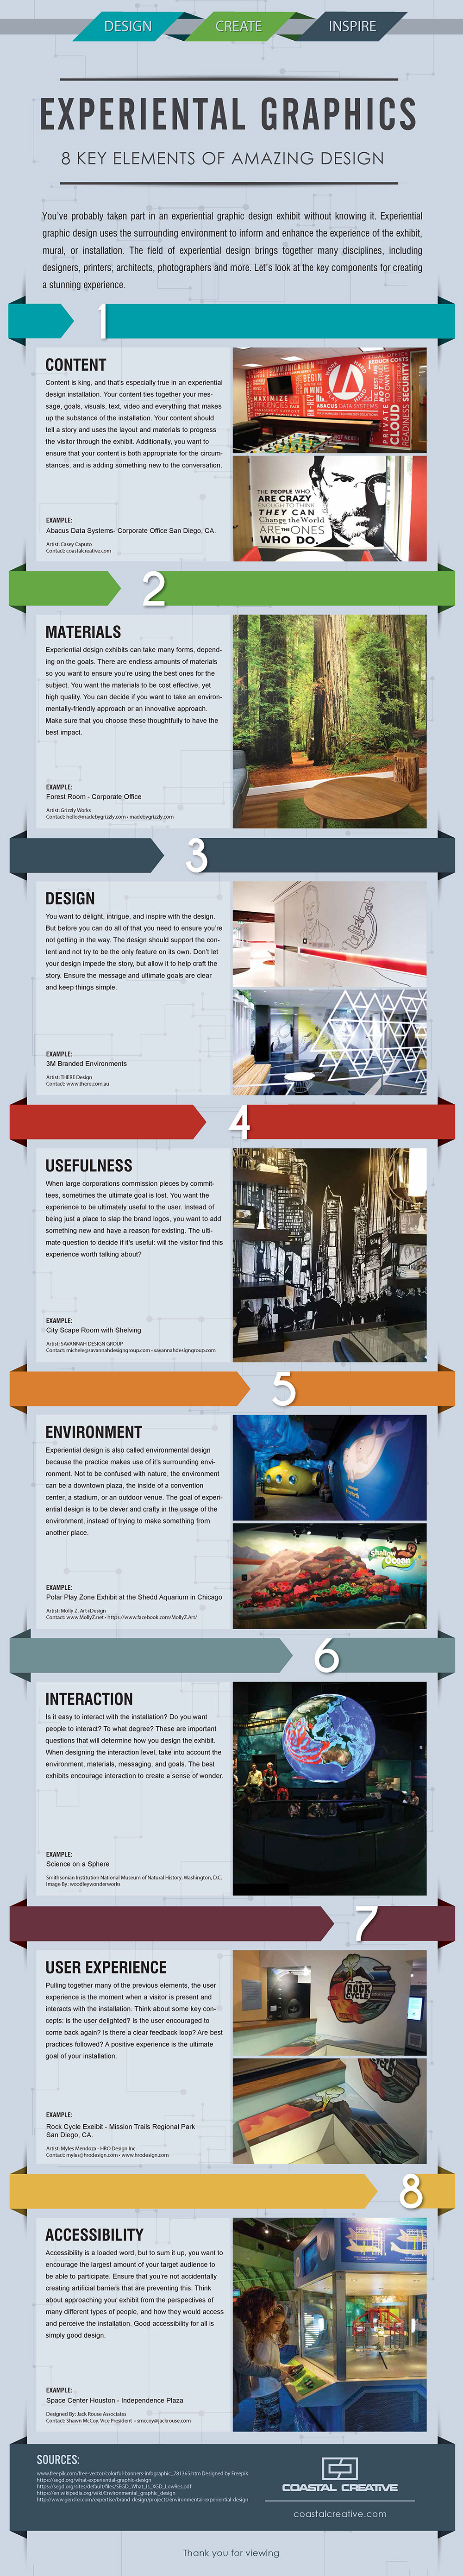 Experiential Graphics Infographic